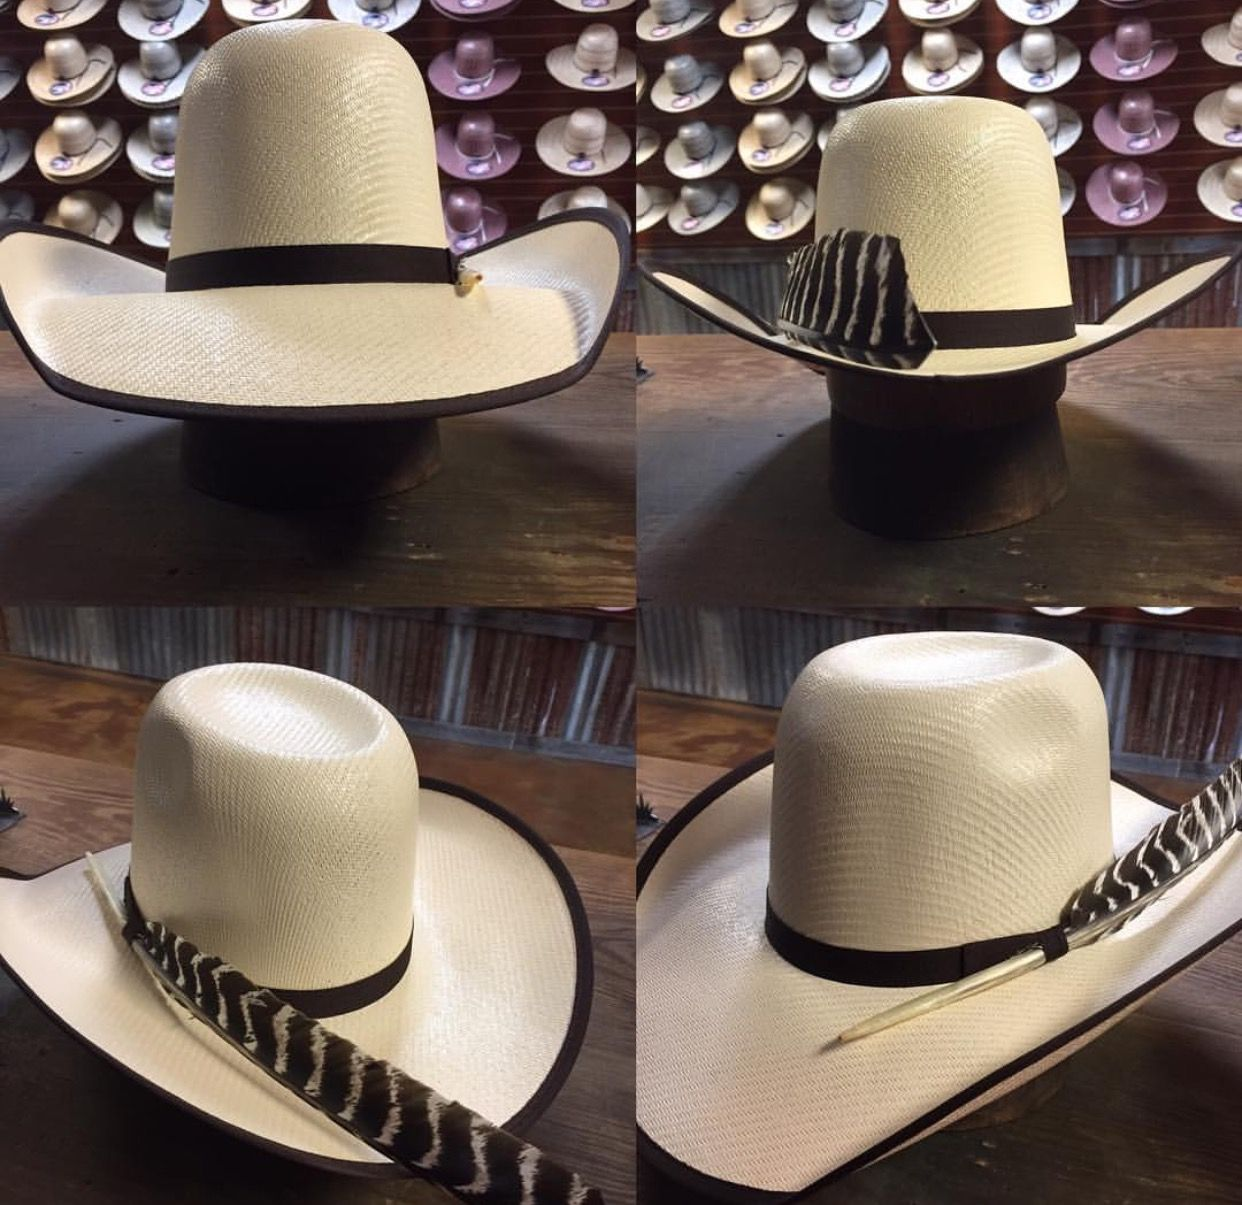 Pin by Tanner Eastlund on Hats in 2019  7559c10e1a6